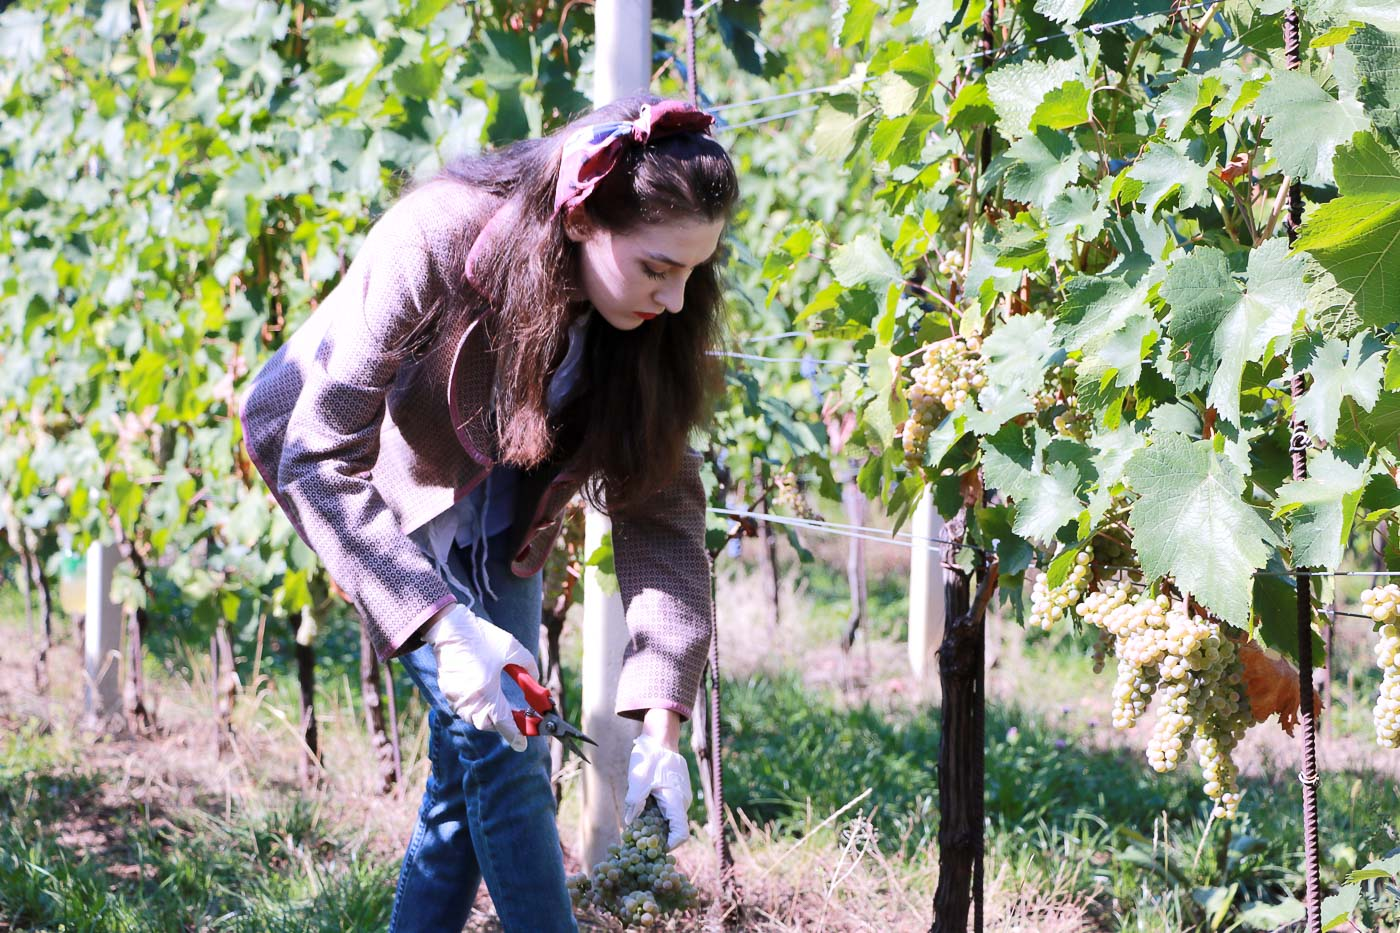 Fashion Blogger Veronika Lipar of Brunette from Wall Street picking grapes at the grape harvest wearing retro printed tweed blazer, blue mom jeans, bobby sneaker, head scarf, gloves